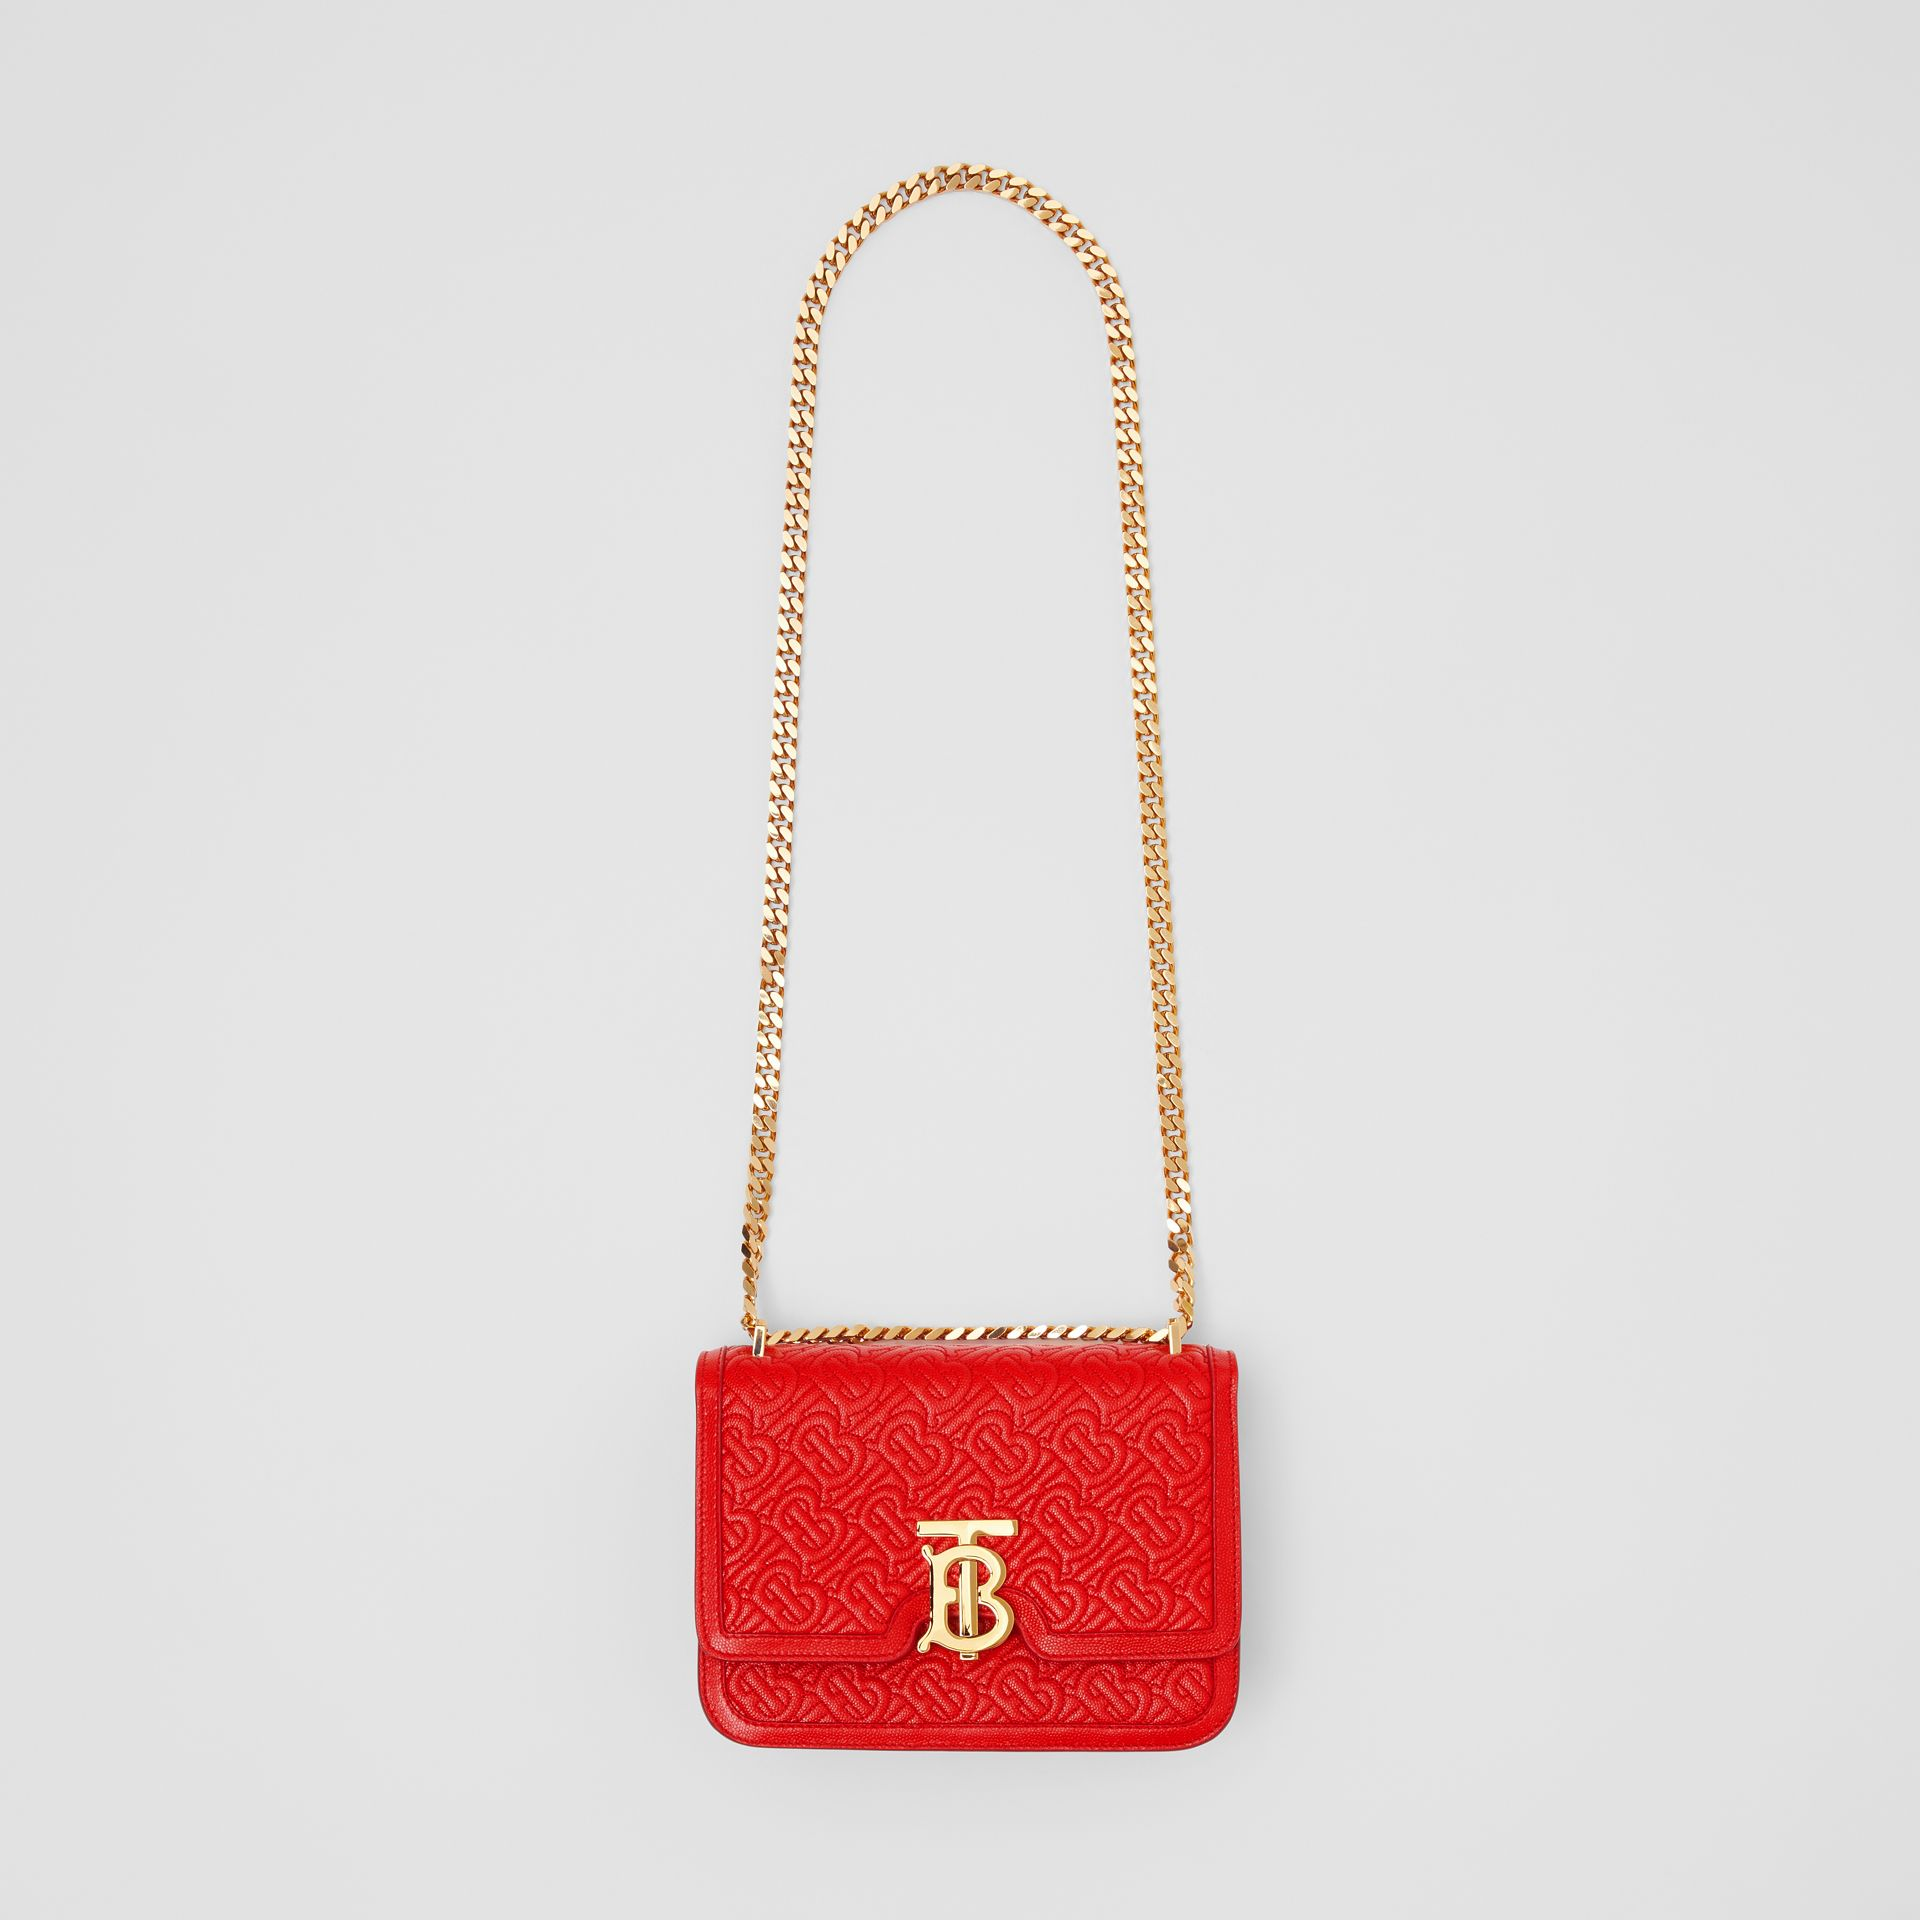 Small Quilted Monogram Leather TB Bag in Bright Red - Women | Burberry United States - gallery image 3